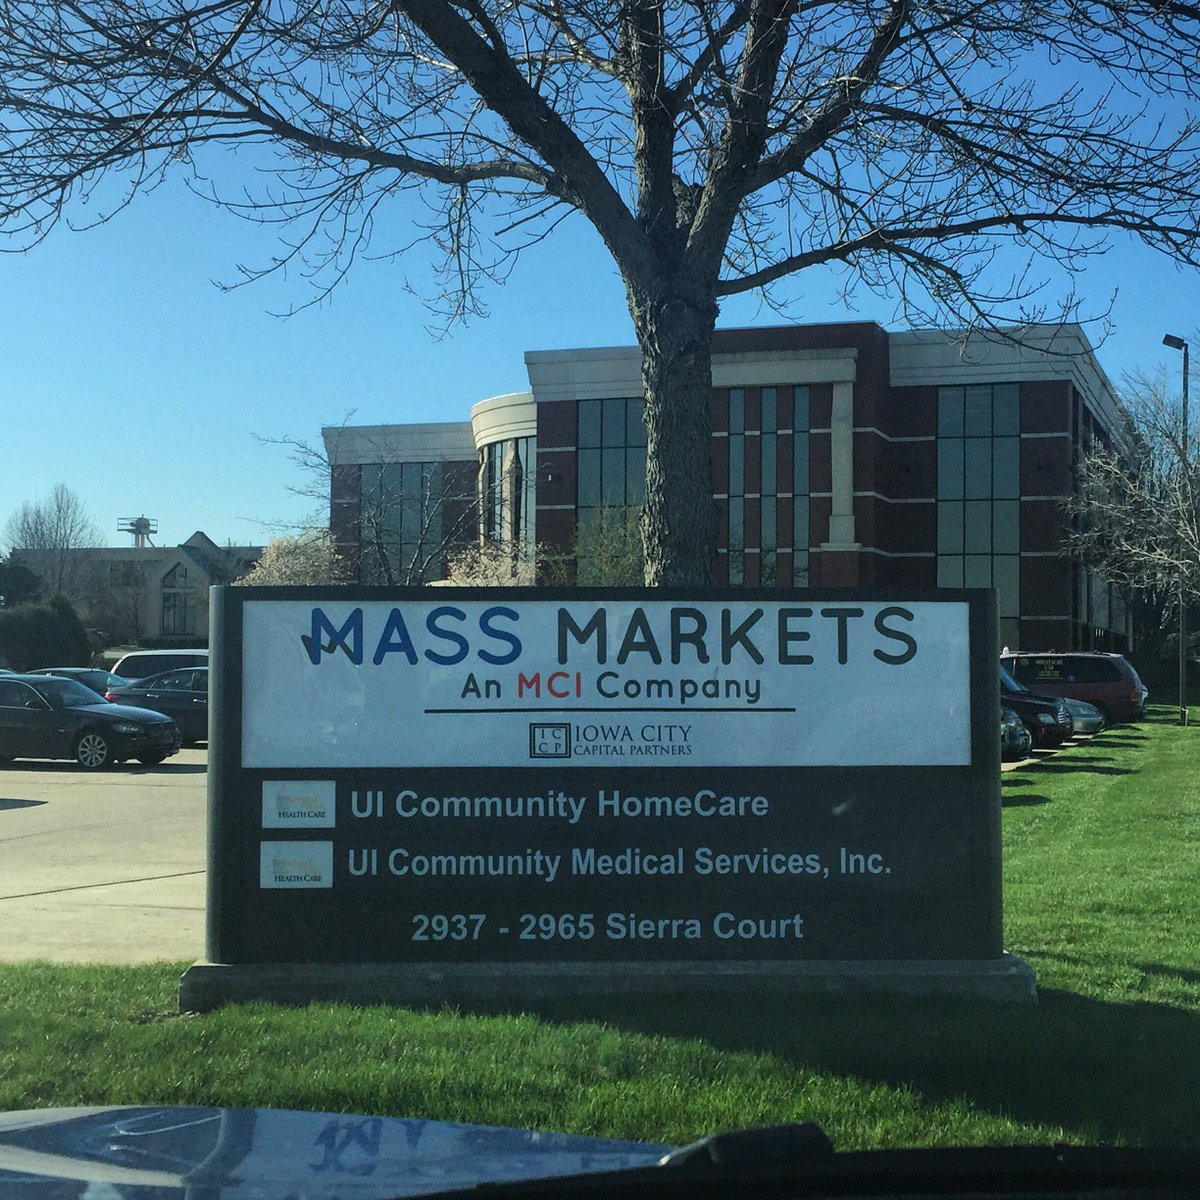 #MassMarkets HQ = #XAAS #BPO #omnichannel #sales & #custserv #contactcenters in the #USA https://t.co/6lw7oODfcc https://t.co/5IOz1x8bg5